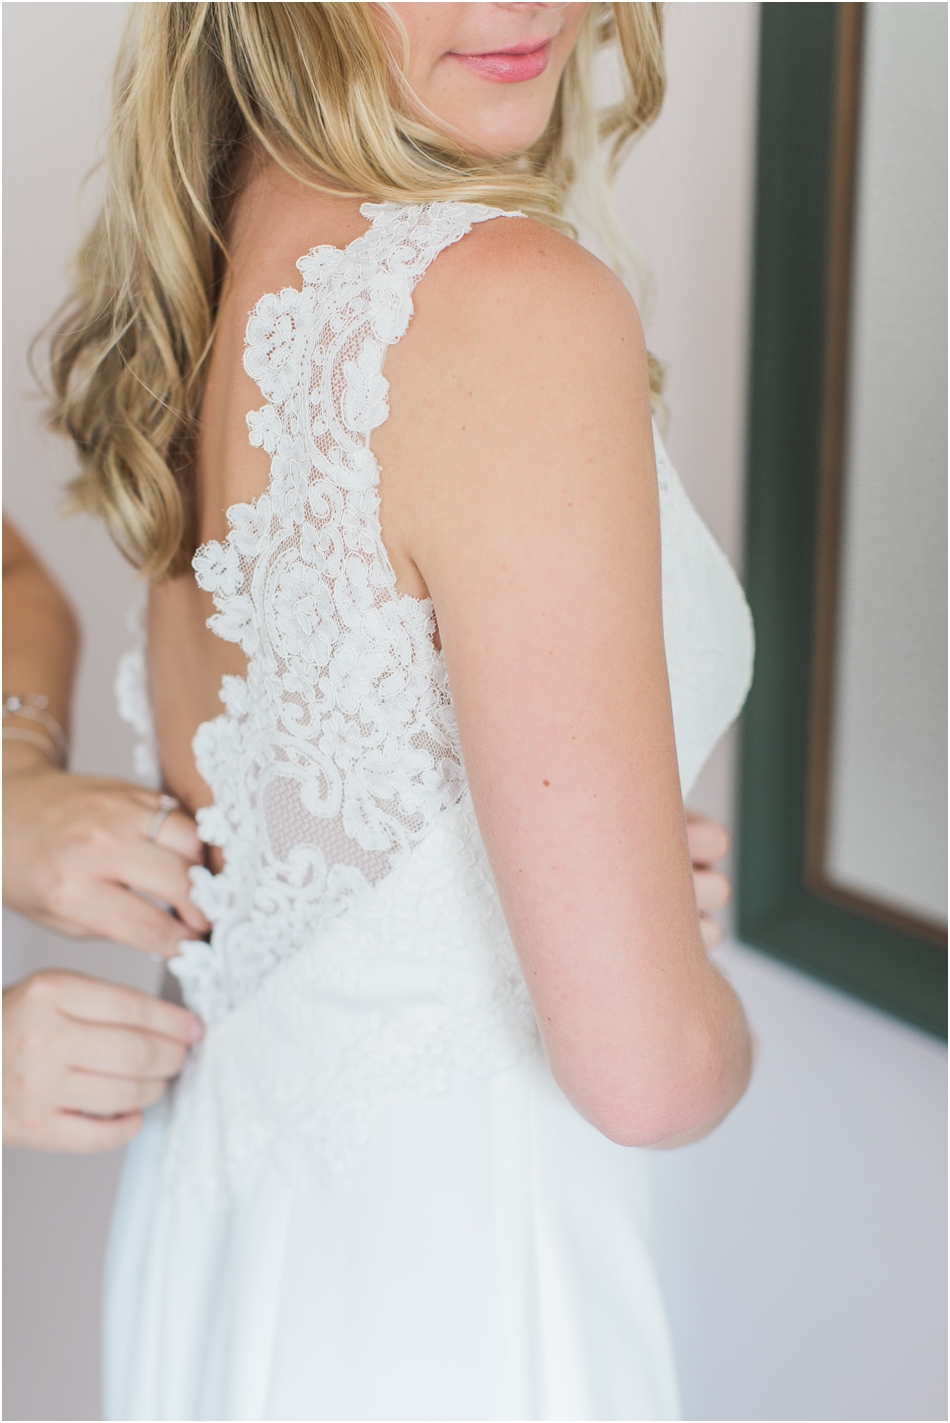 style_me_pretty_dennis_inn_cape_cod_always_yours_events_brunch_editorial_new_england_wedding_photographer_Meredith_Jane_Photography_photo_2196.jpg